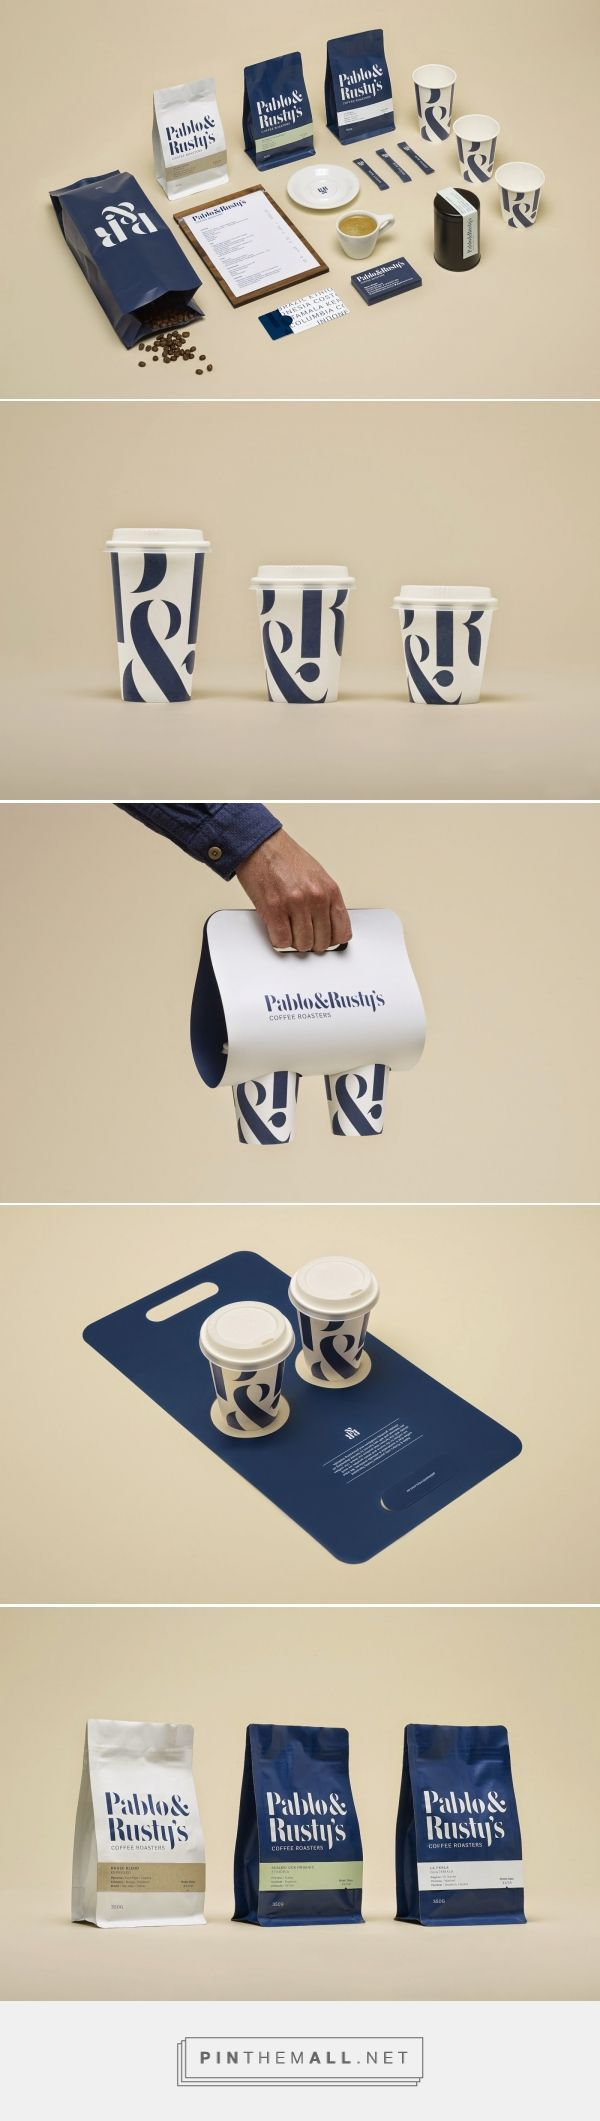 Pablo & Rustys Branding and Package Design